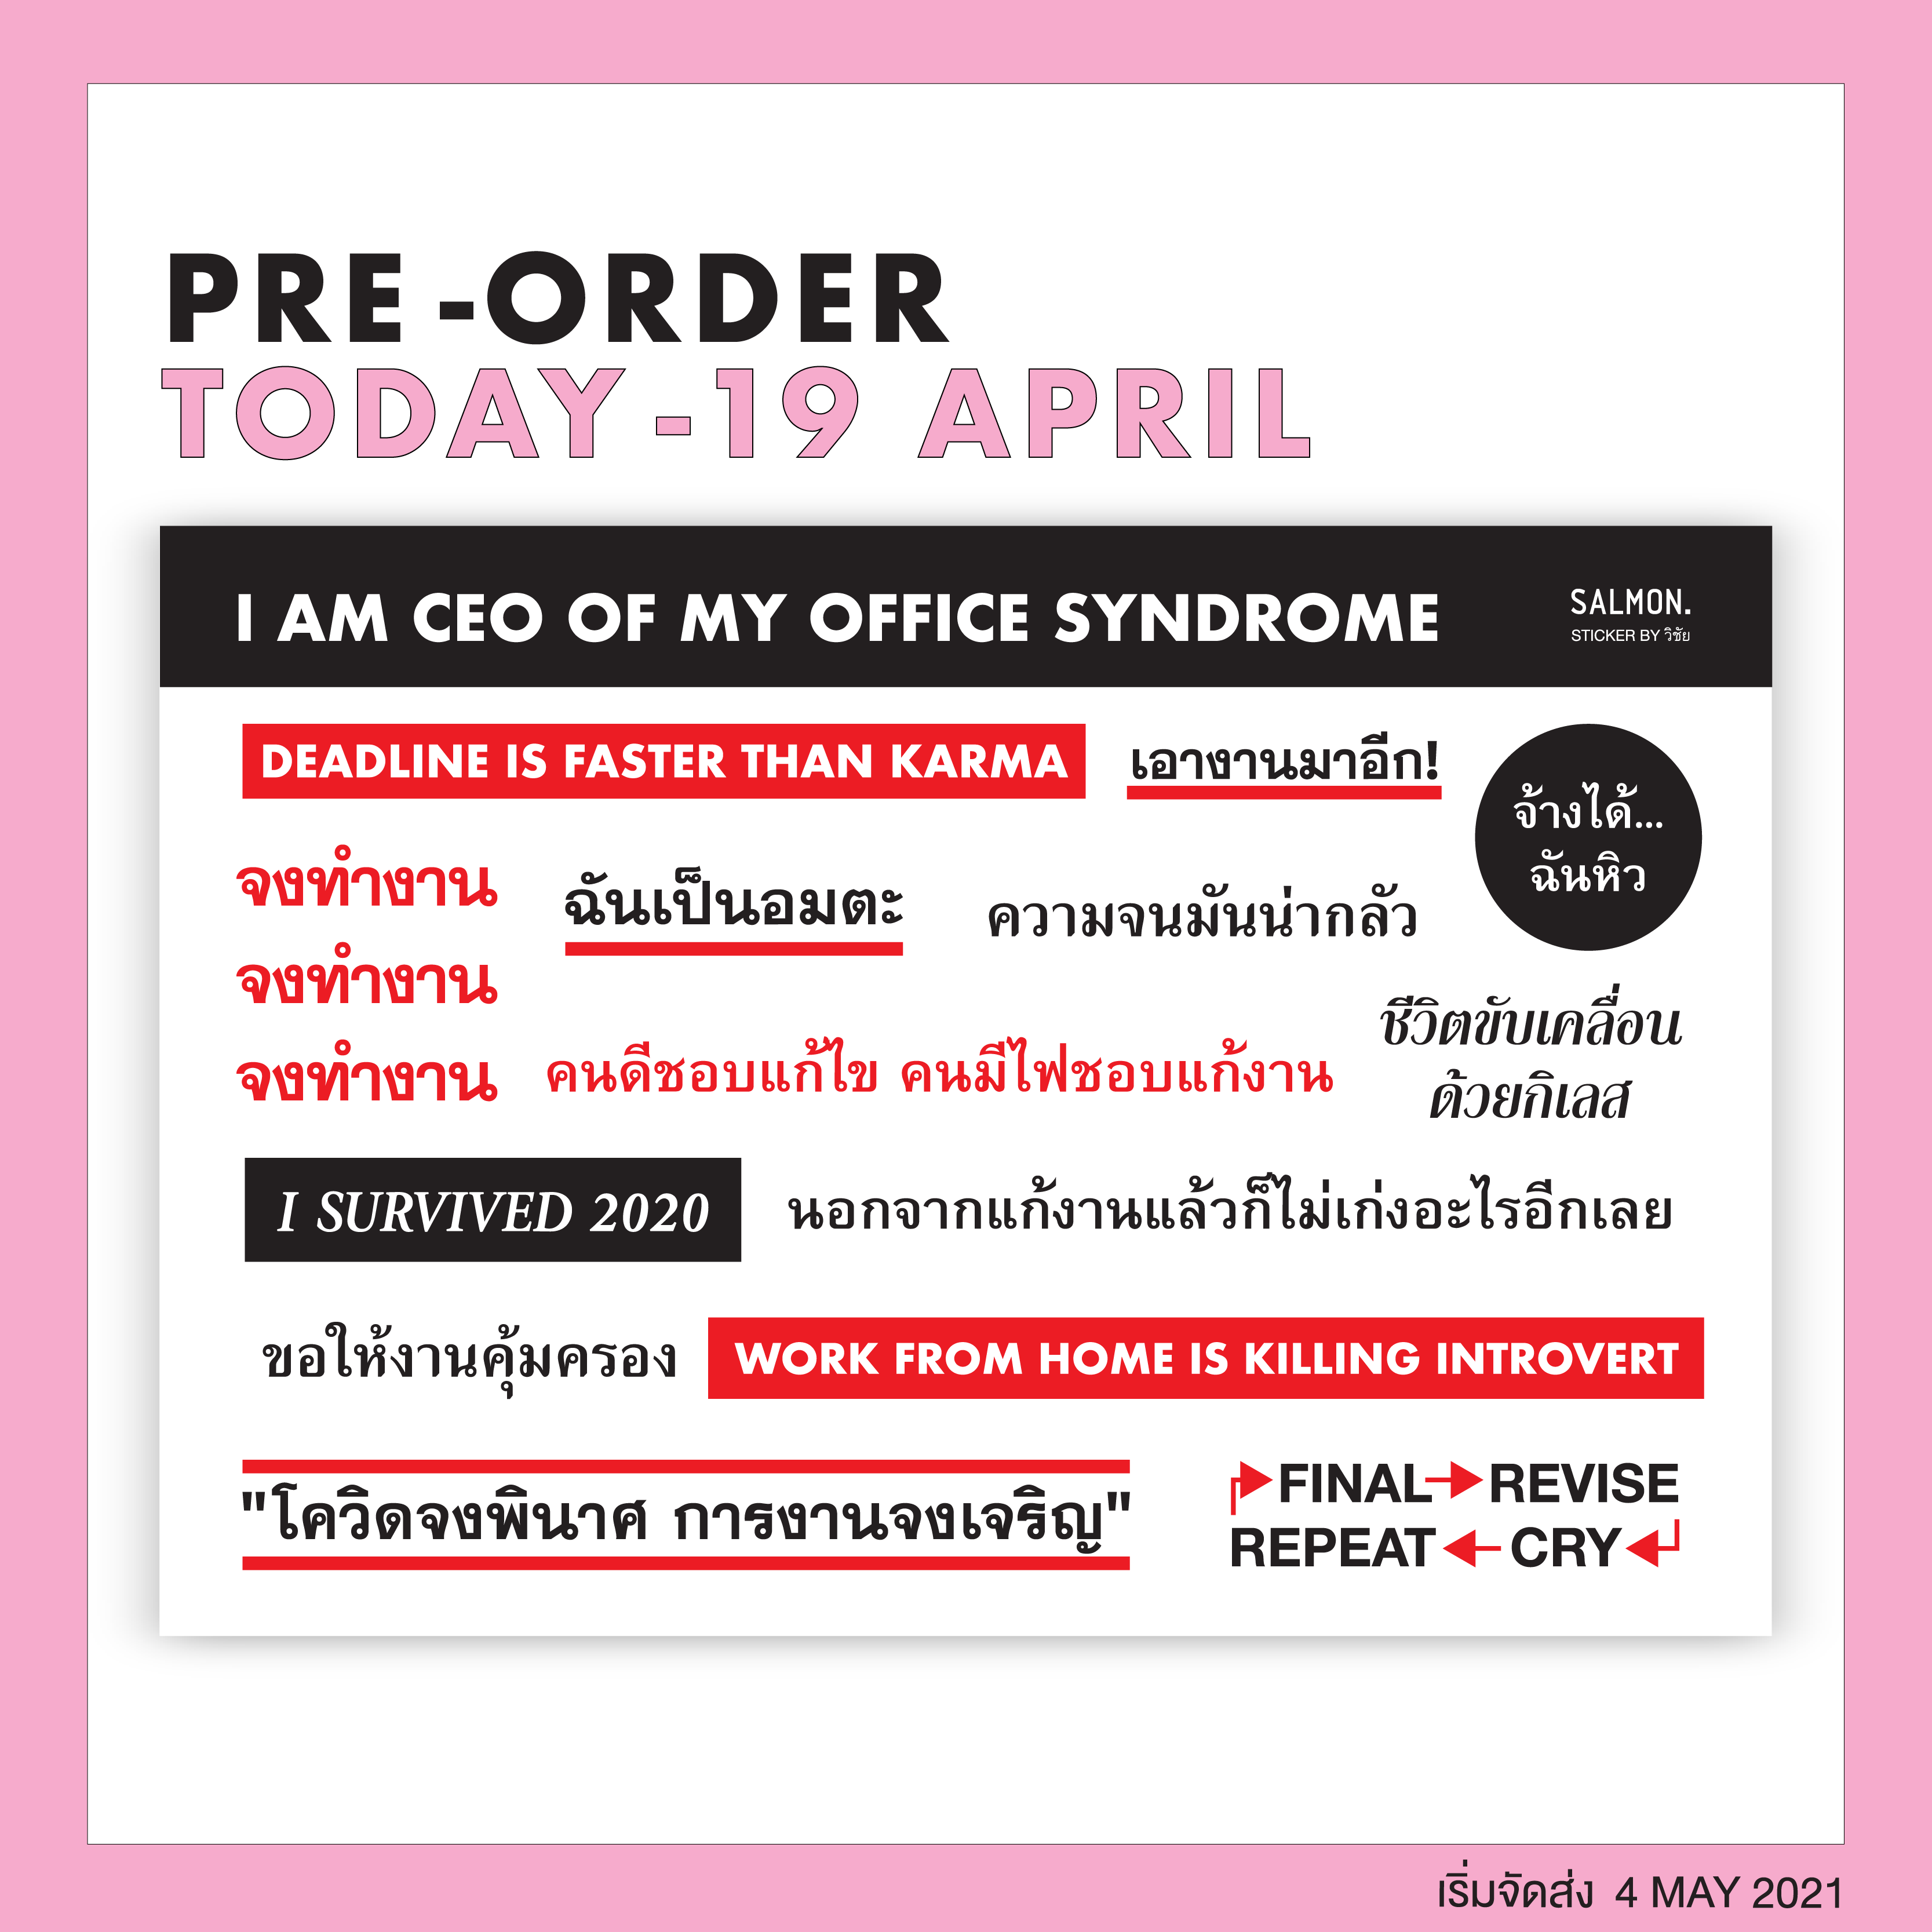 [PRE]  'I AM CEO OF MY OFFICE SYNDROME' STICKER